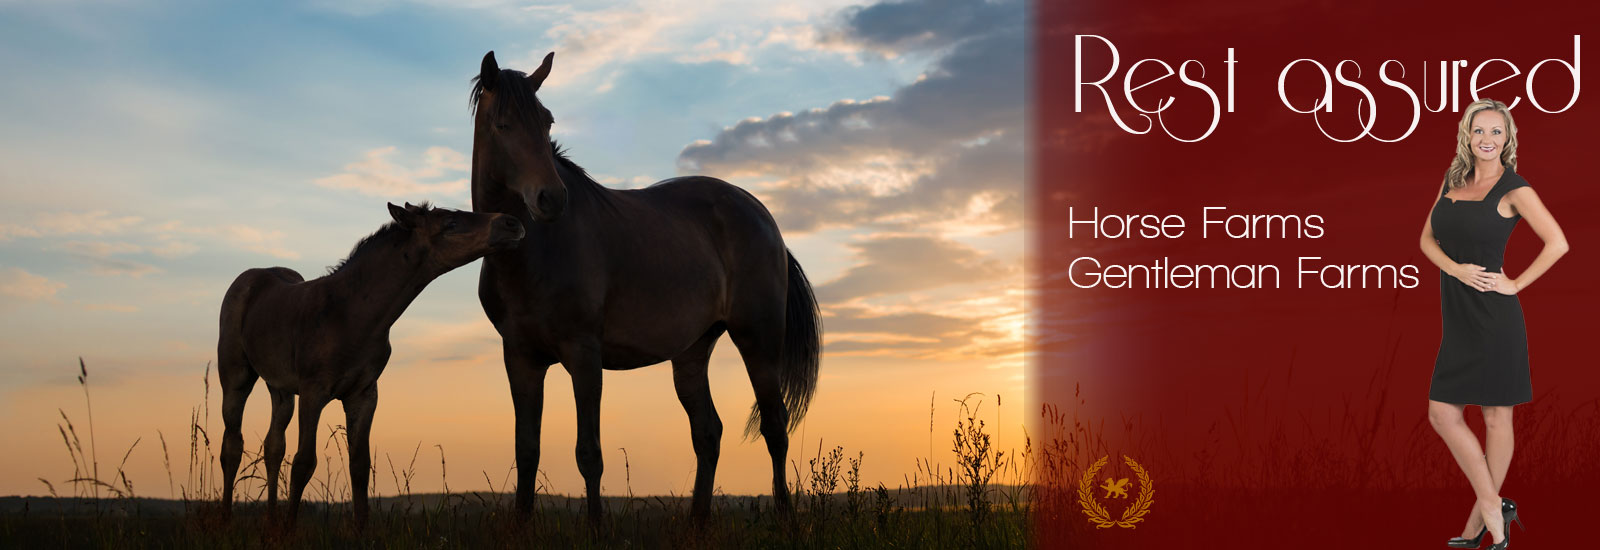 Equine Farm Insurance in Ocala